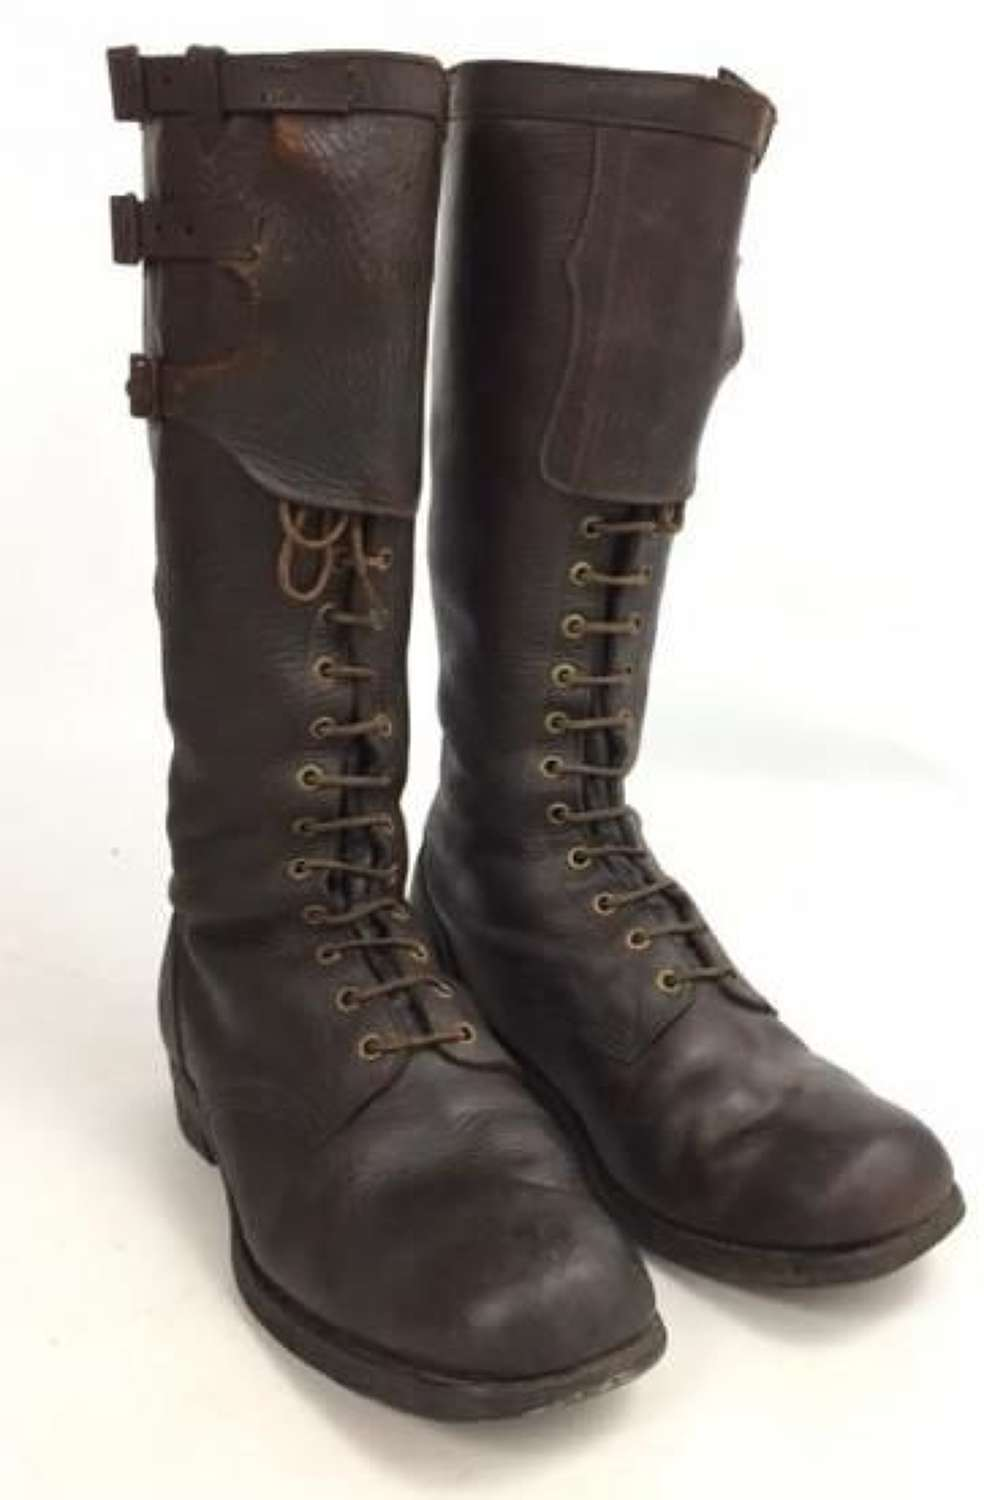 Original 1915 Dated British Army Field Boots